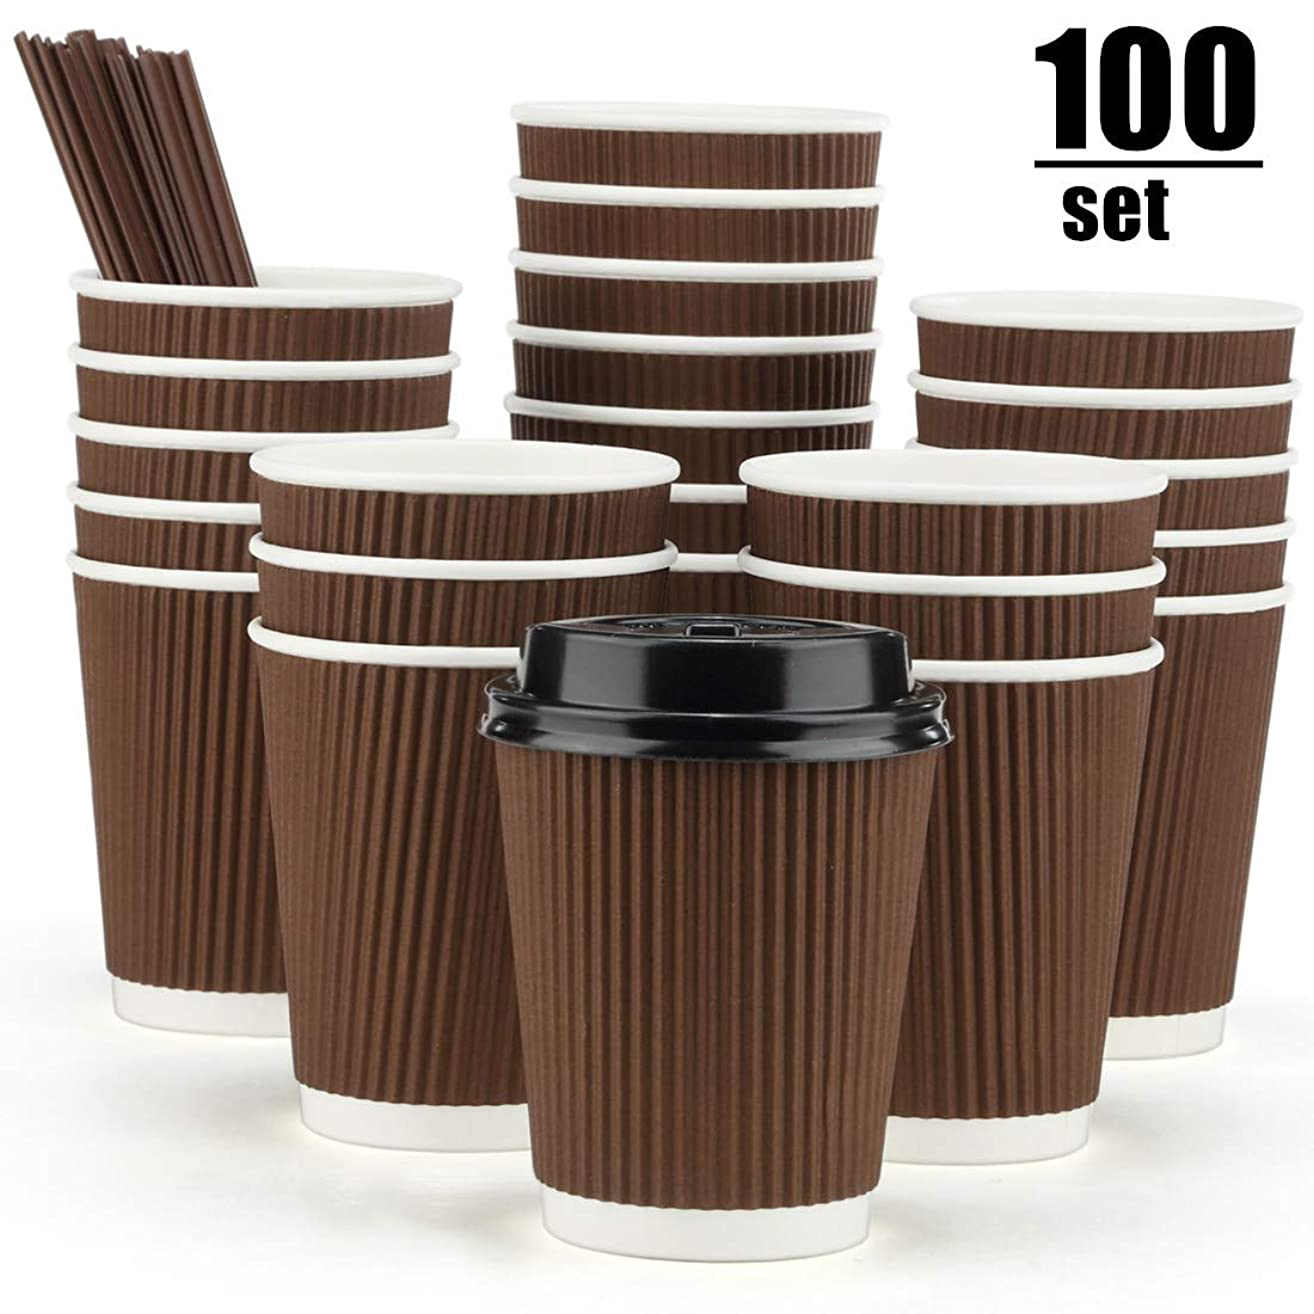 Eupako 8 oz Disposable Coffee Cups 100 Pack Ripple Wall Paper Cups To Go, Insulated Corrugated Cups with Lids and Straws, Perfect for Hot and Cold Drinks